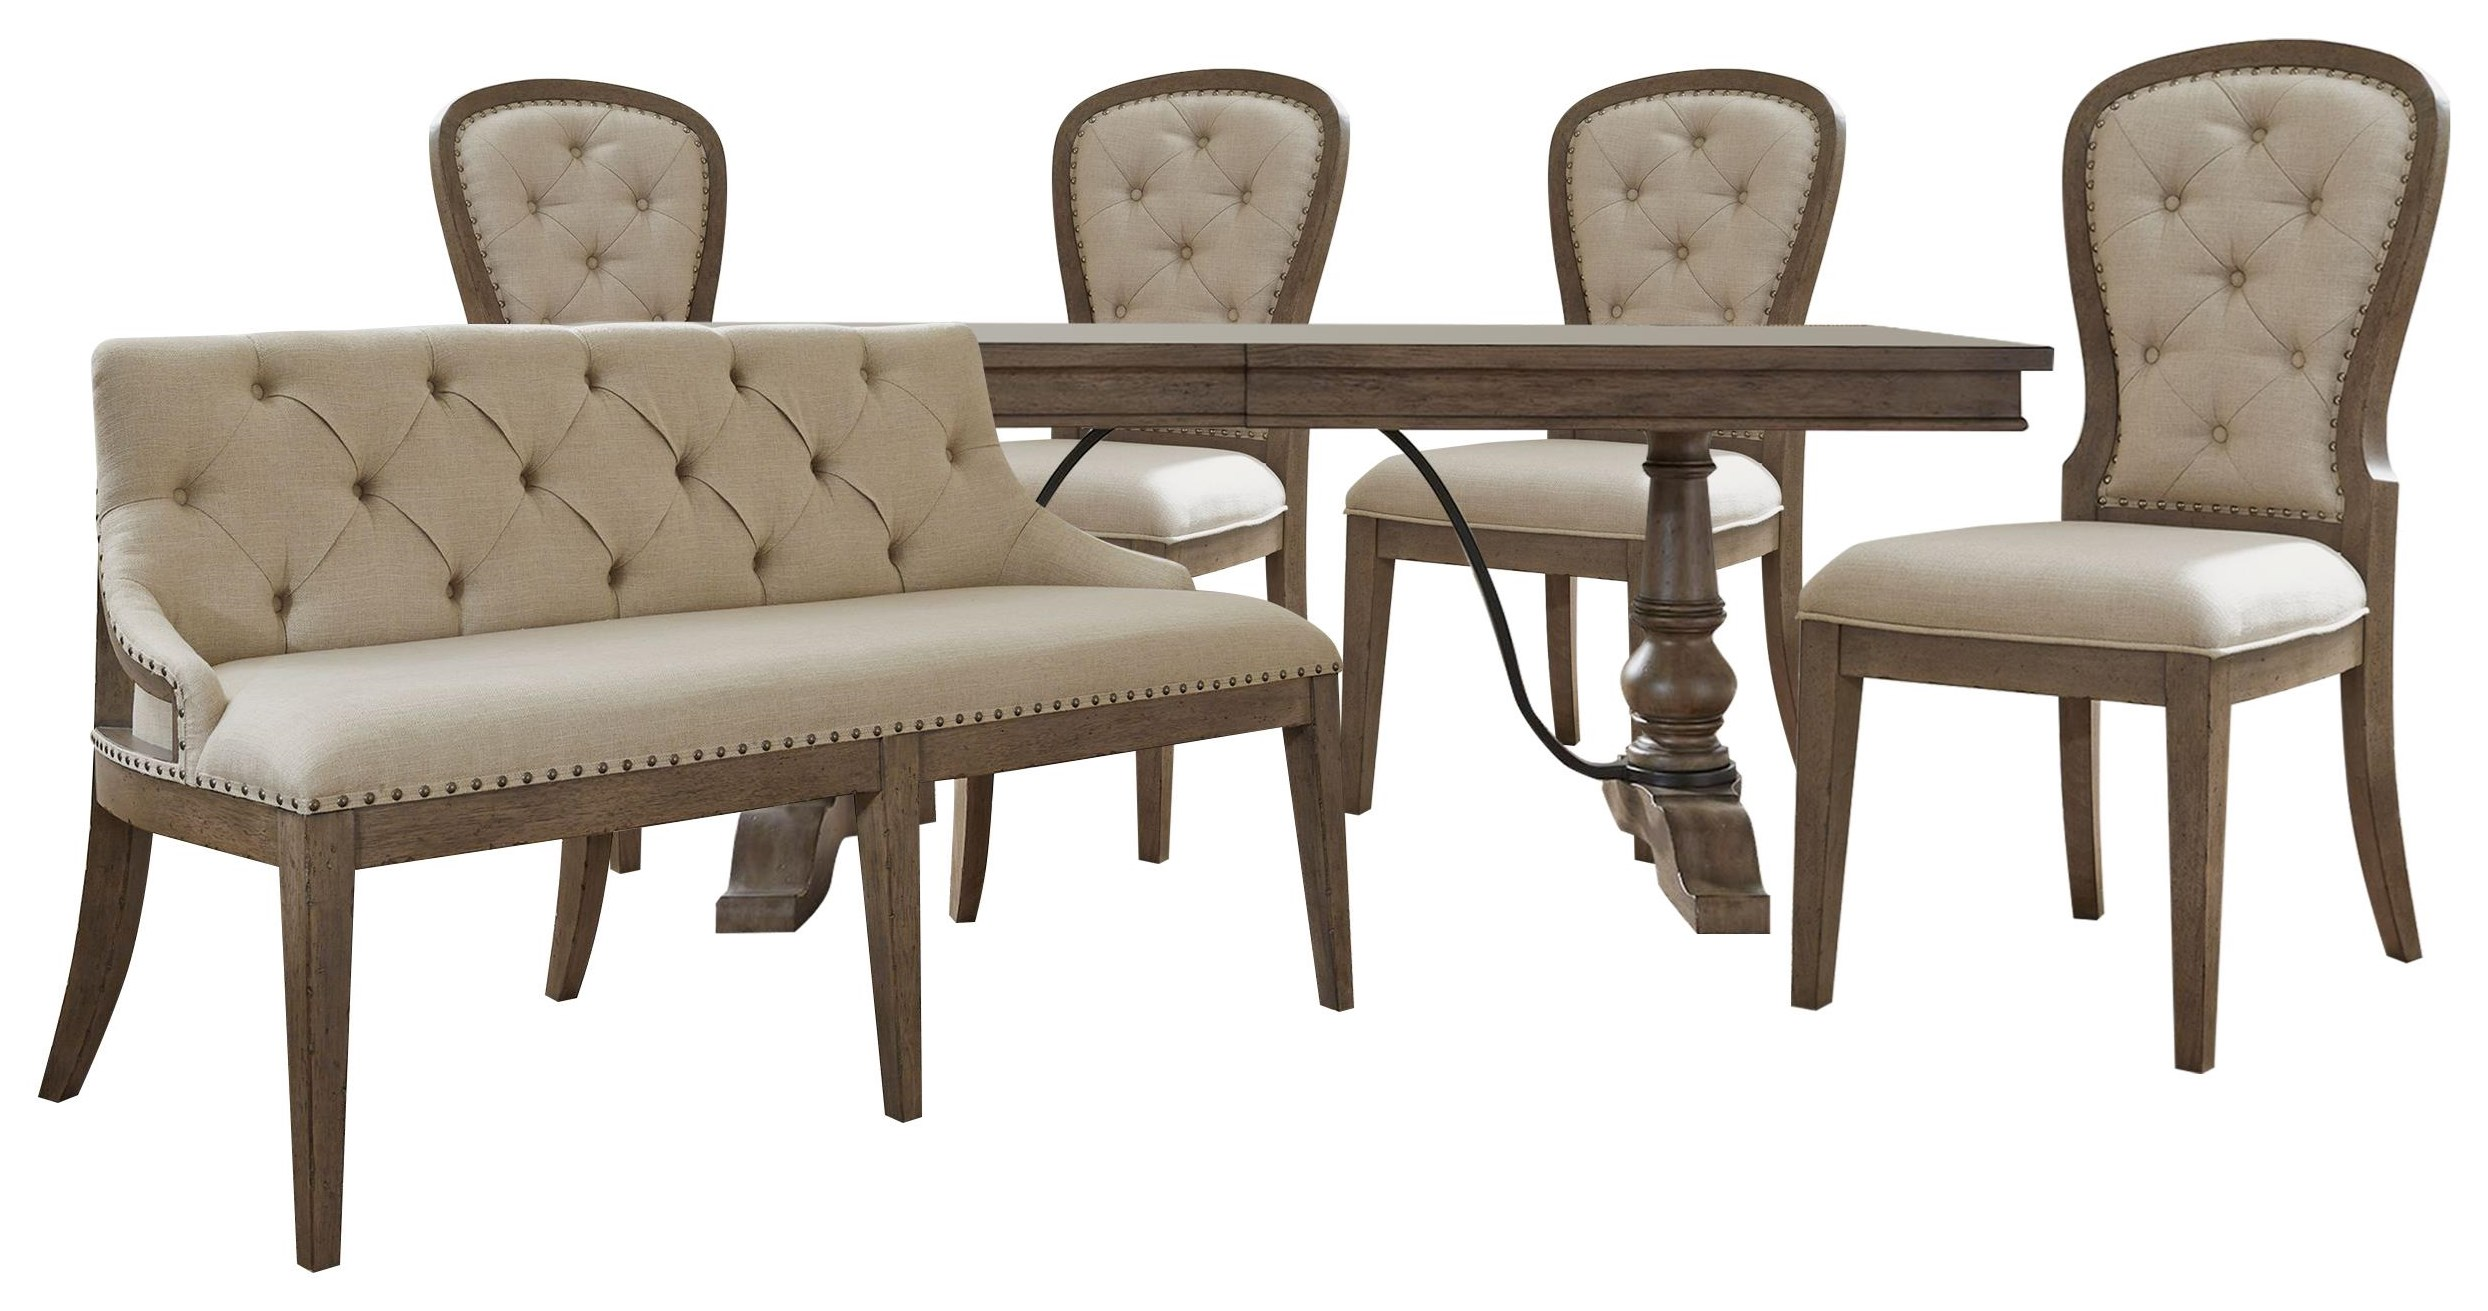 Americana Farmhouse Rectangle Chair, Chairs and Bench by Liberty Furniture at Johnny Janosik